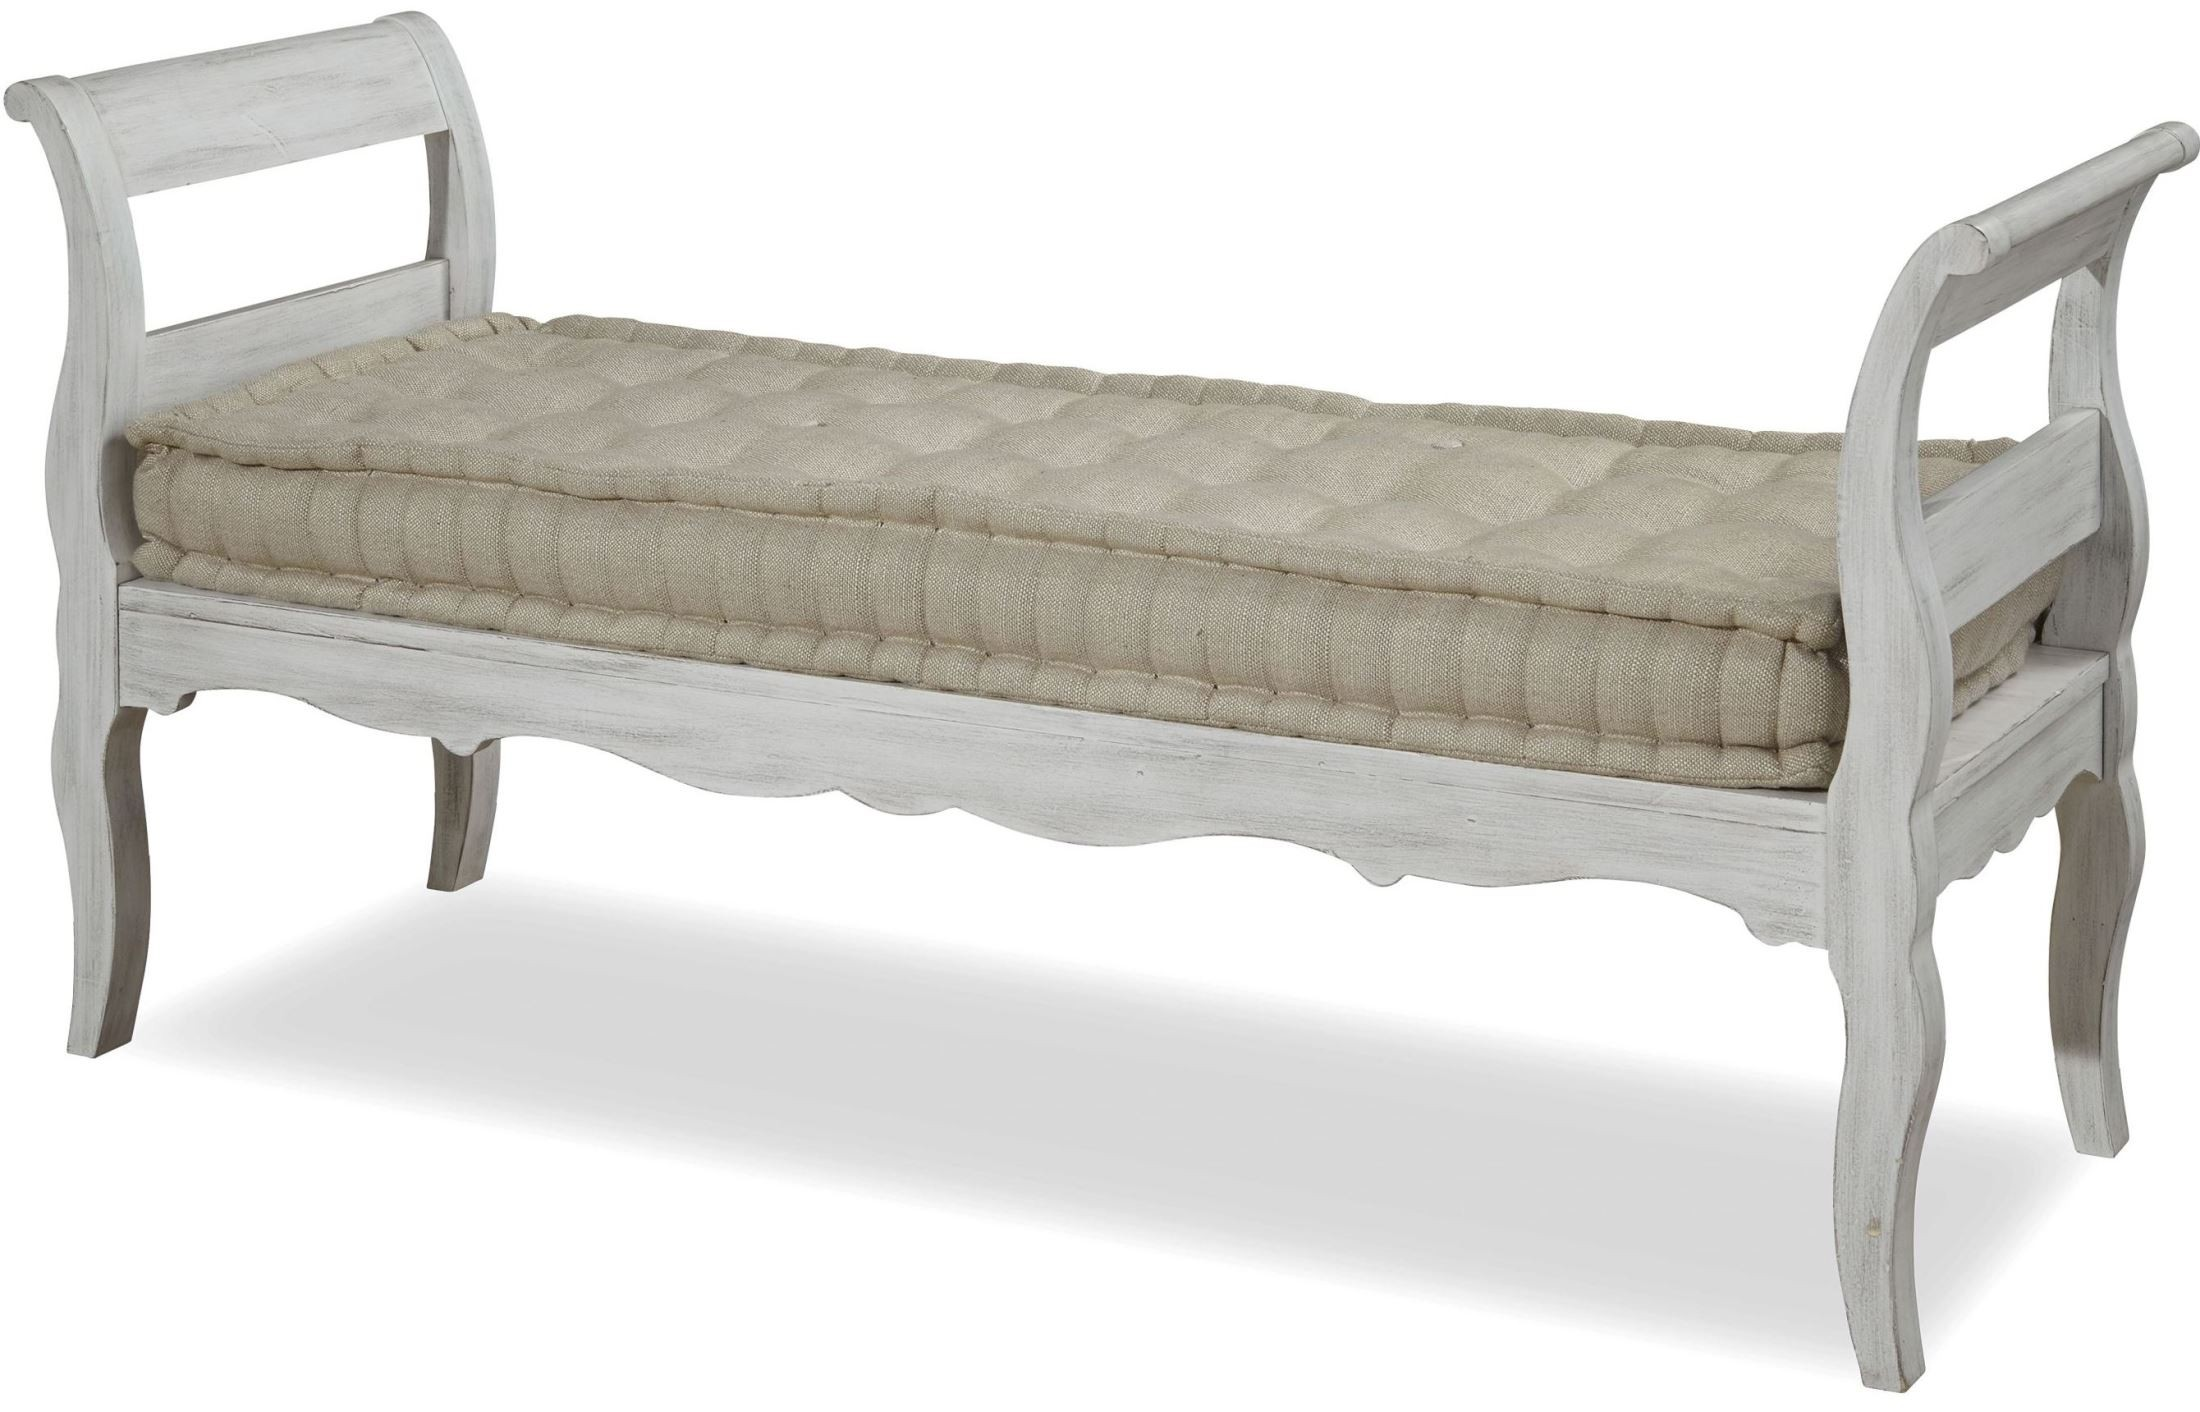 Dogwood Blossom Bed End Bench From Paula Deen 597380